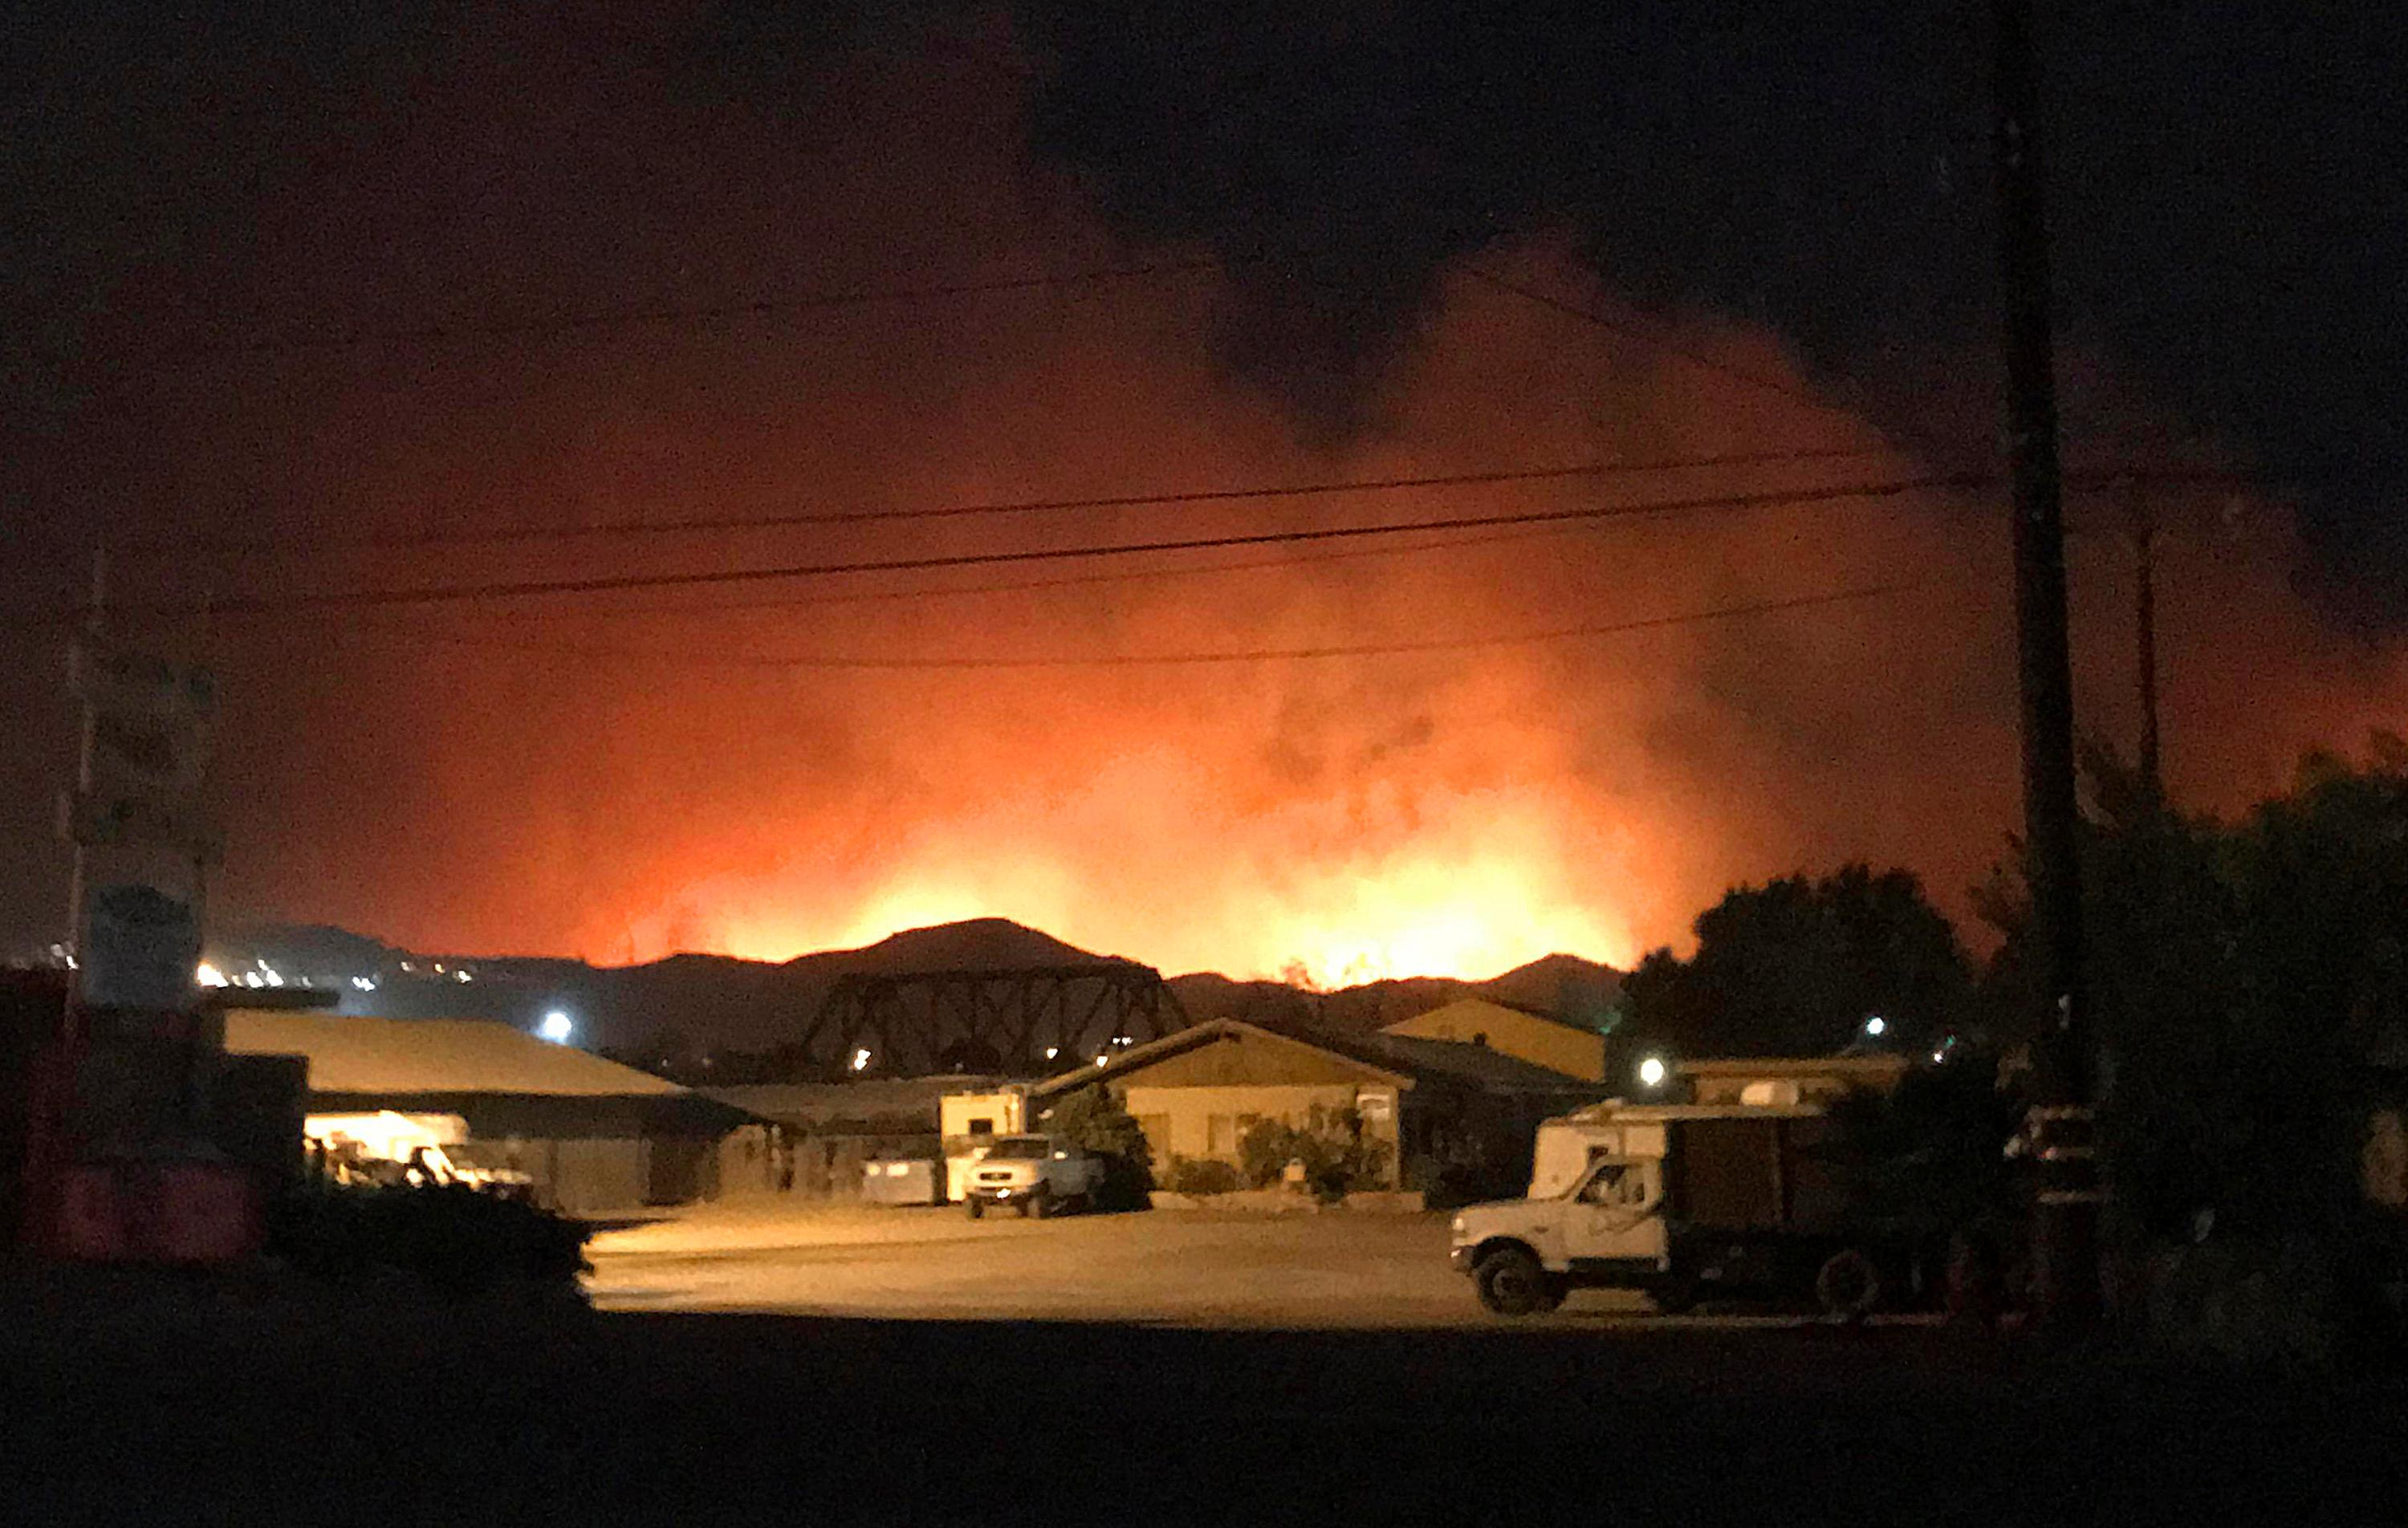 Flames from a wildfire loom up over a neighborhood in Santa Paula, Calf., Monday, Dec. 4, 2017. Ventura County fire officials say the blaze broke out Monday east of Santa Paula, a city of 30,000 people about 60 miles northwest of downtown Los Angeles. (Megan Diskin/The Ventura County Star via AP)<p></p>